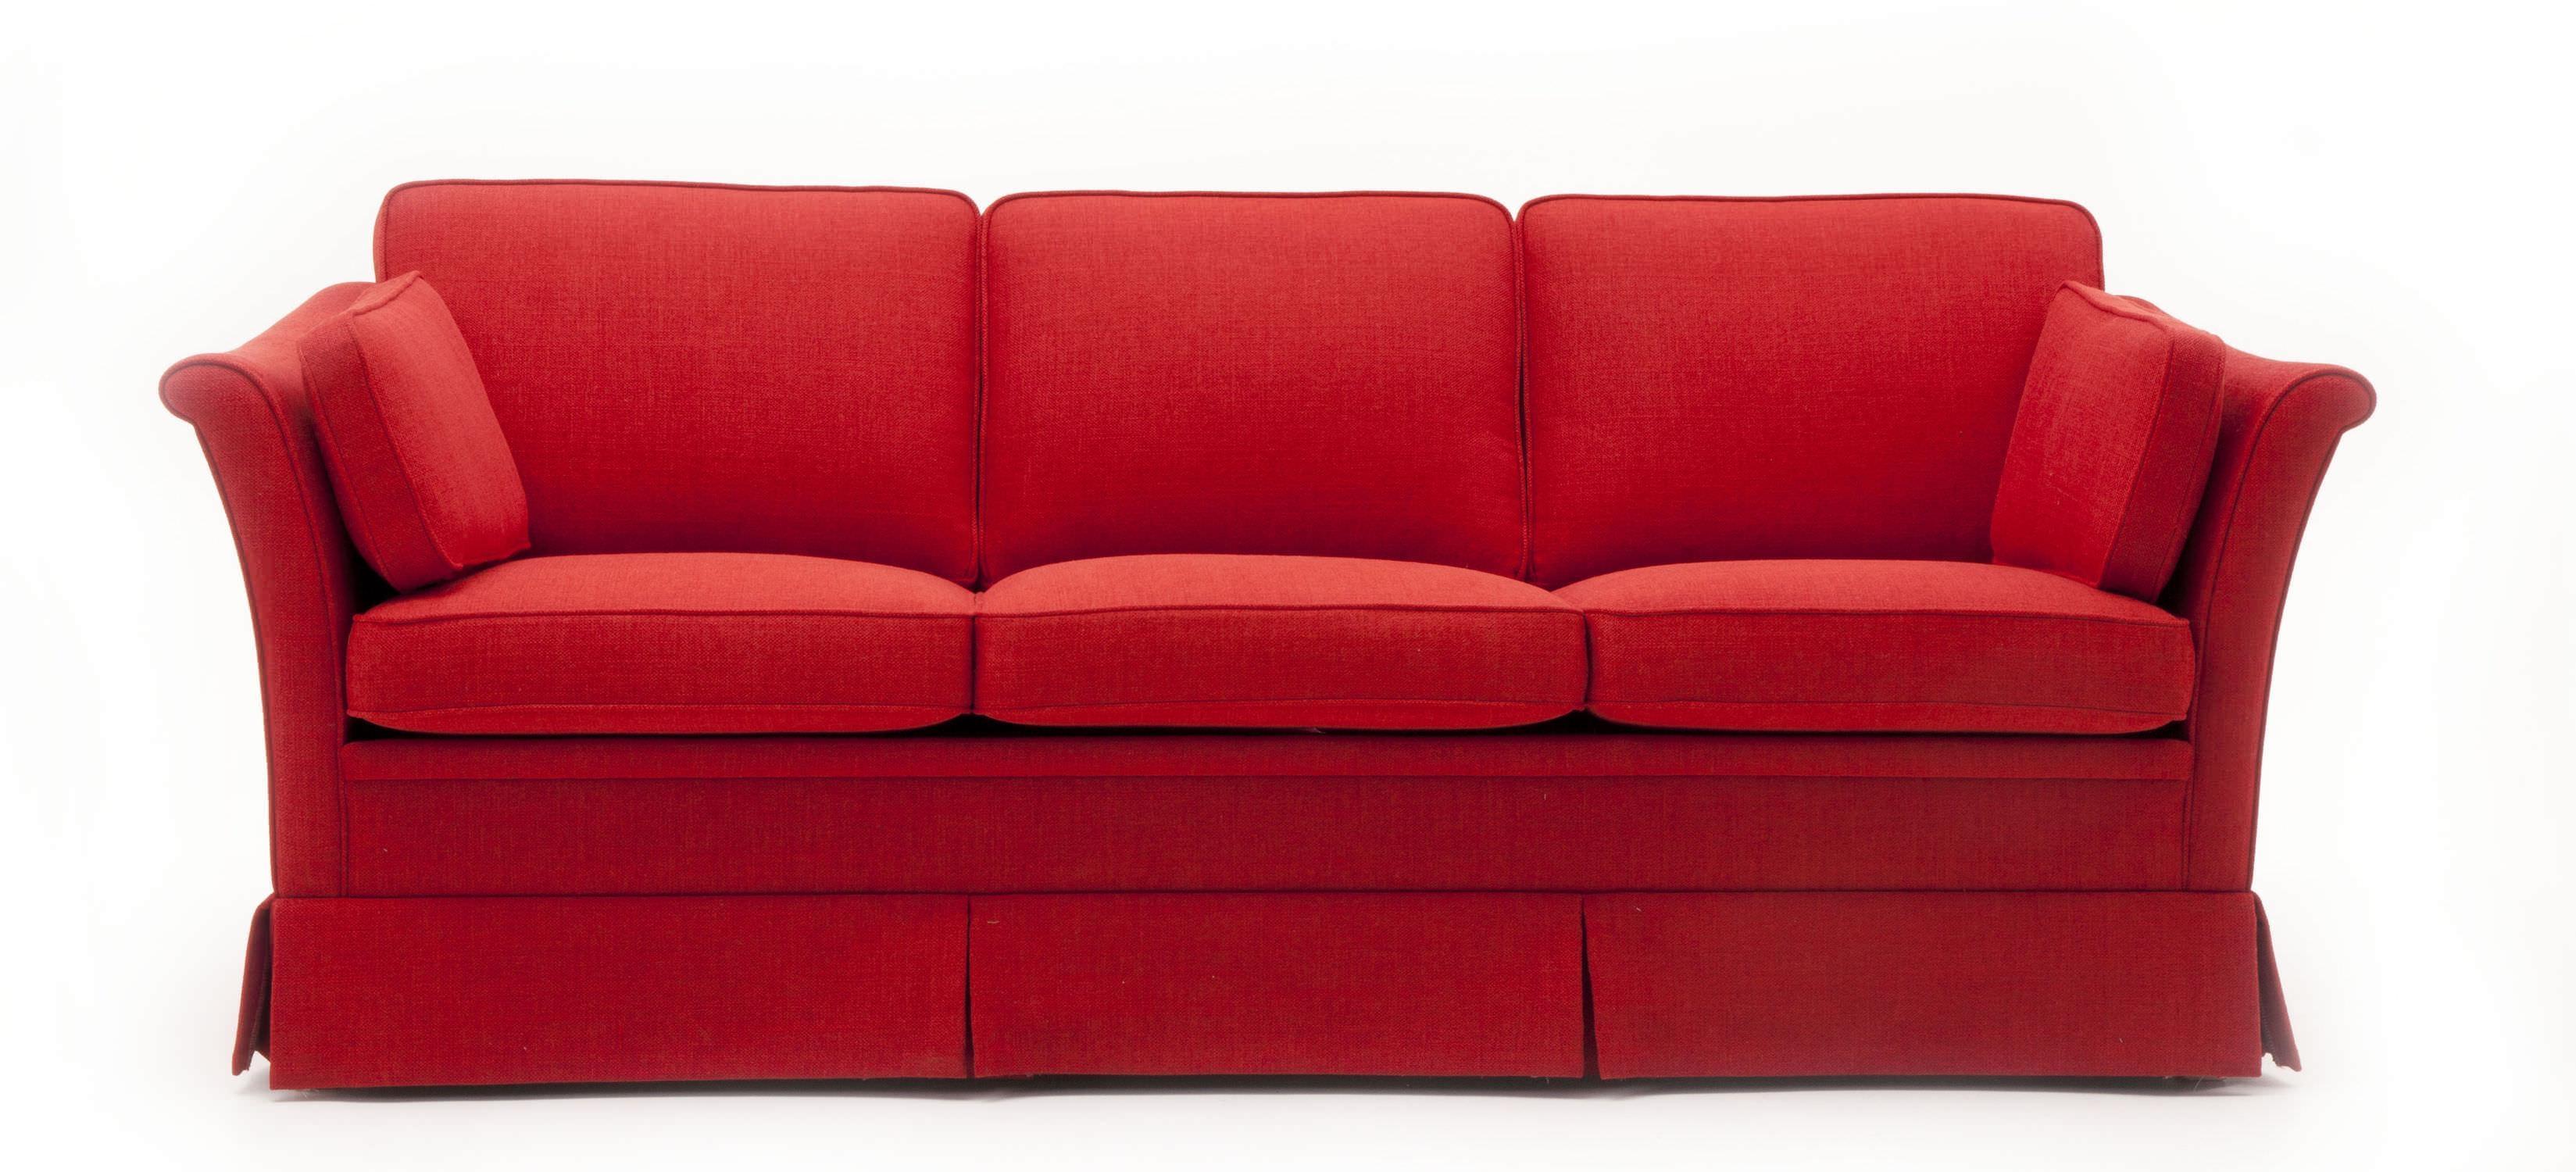 sofa cover fabric online leather sleeper memory foam 20 photos sofas with removable covers ideas